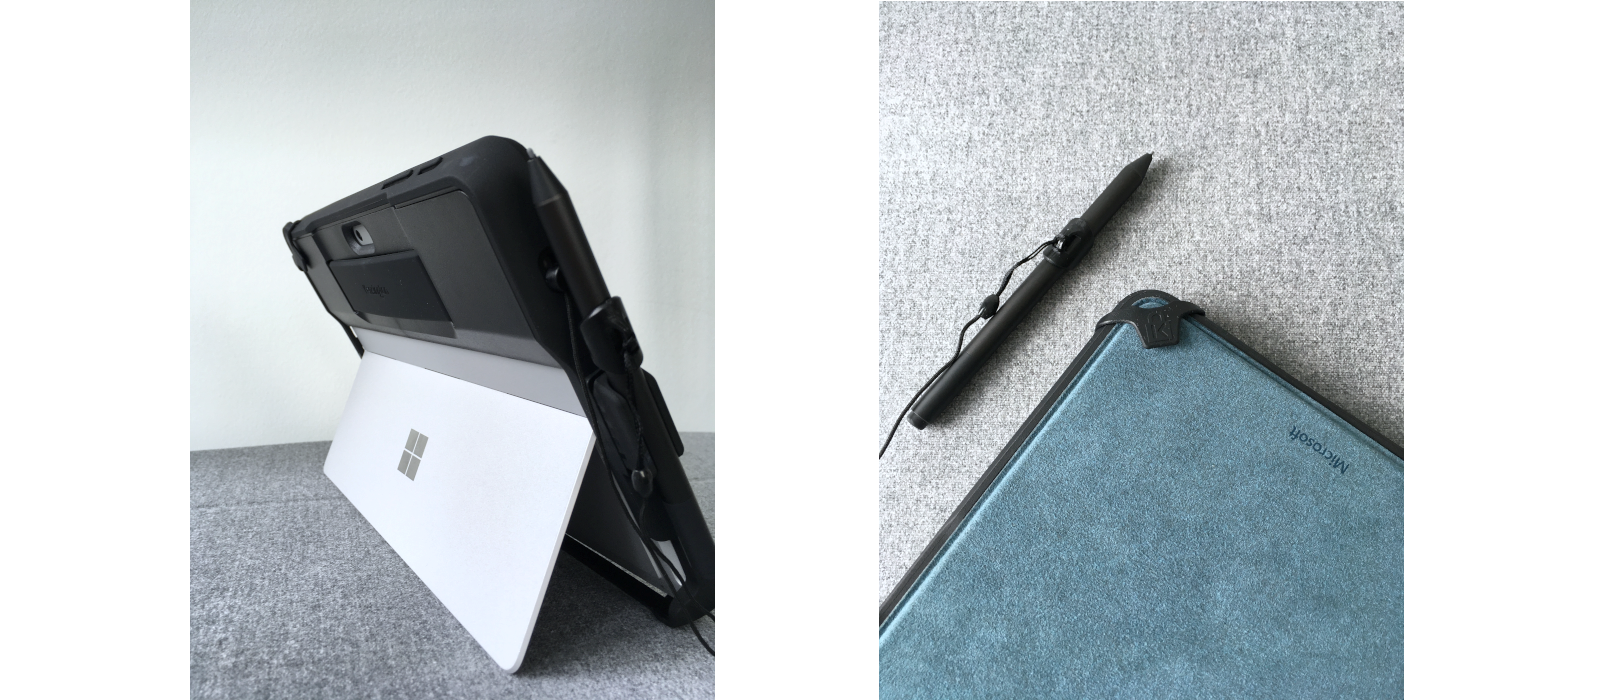 The Kensington® BlackBelt™ Rugged Case for the Surface Go and Surface Go 2 with pen holder for the Surface Pen